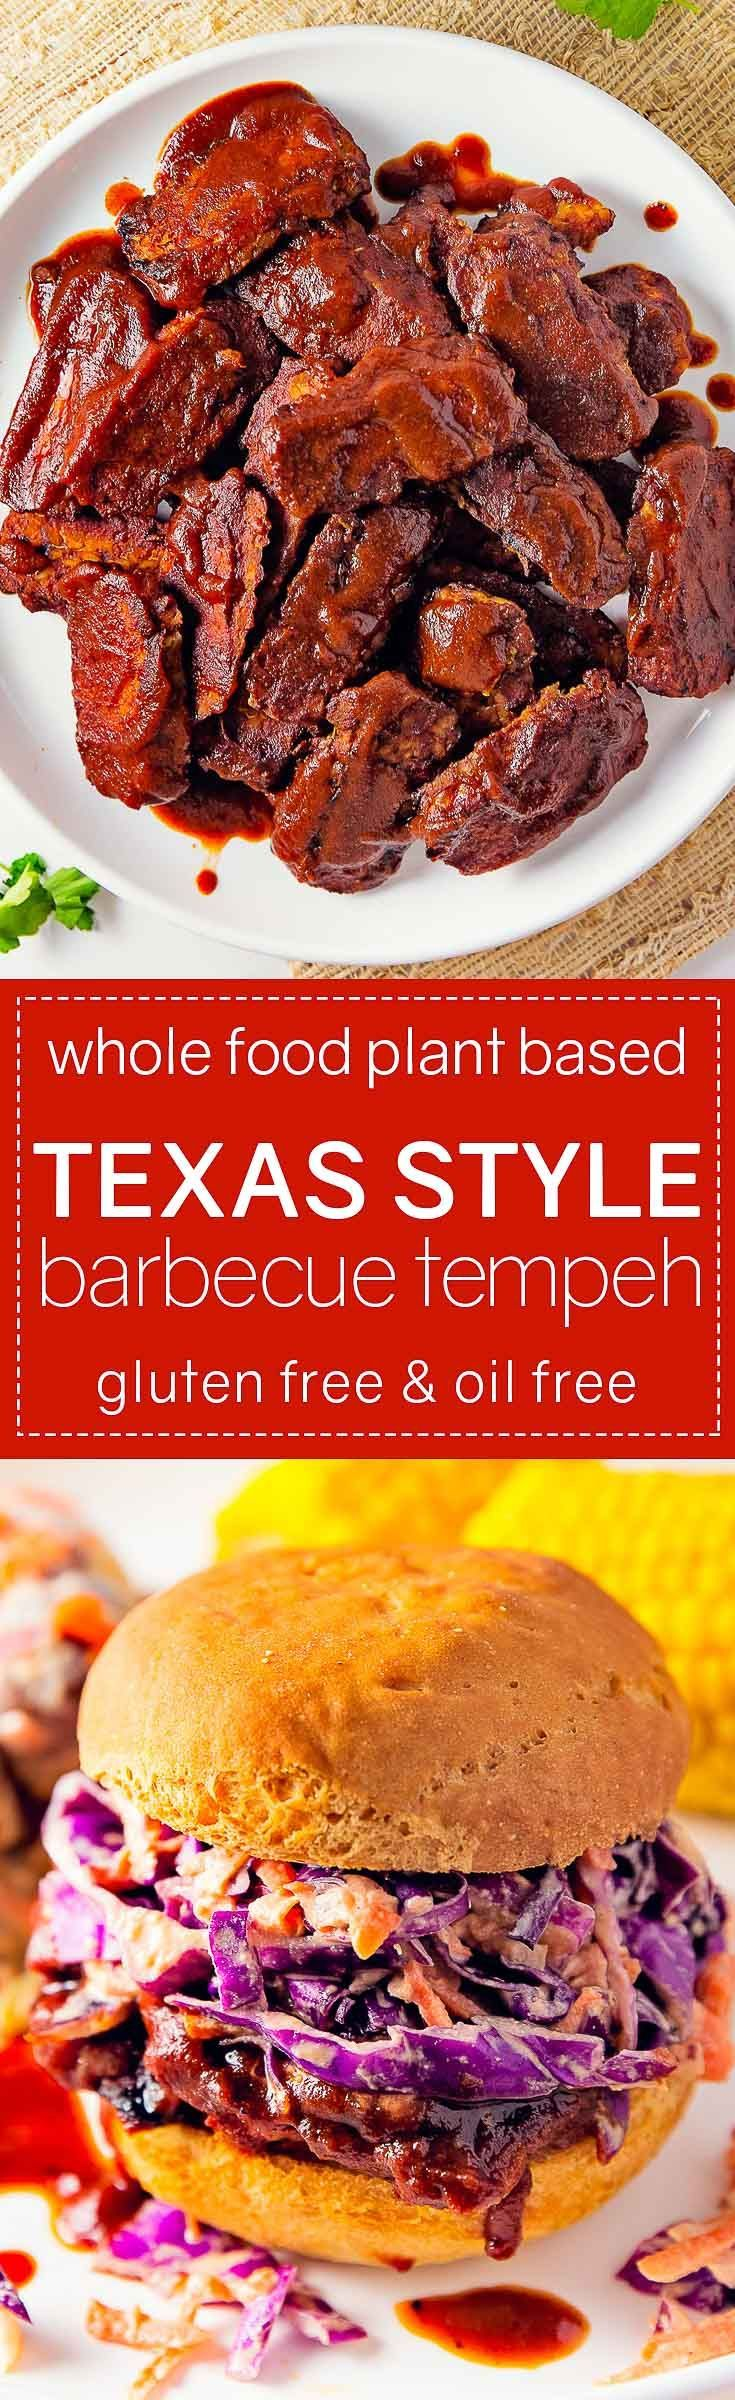 AMAZING and delicious Texas Style Barbecue Tempeh! Super simple and tons of yummy flavor! #vegan #glutenfree #oilfree #tempeh #bbq #barbecue #sandwich #plantbased #refinedsugarfree #healthy #monkeyandmekitchenadventures #recipe